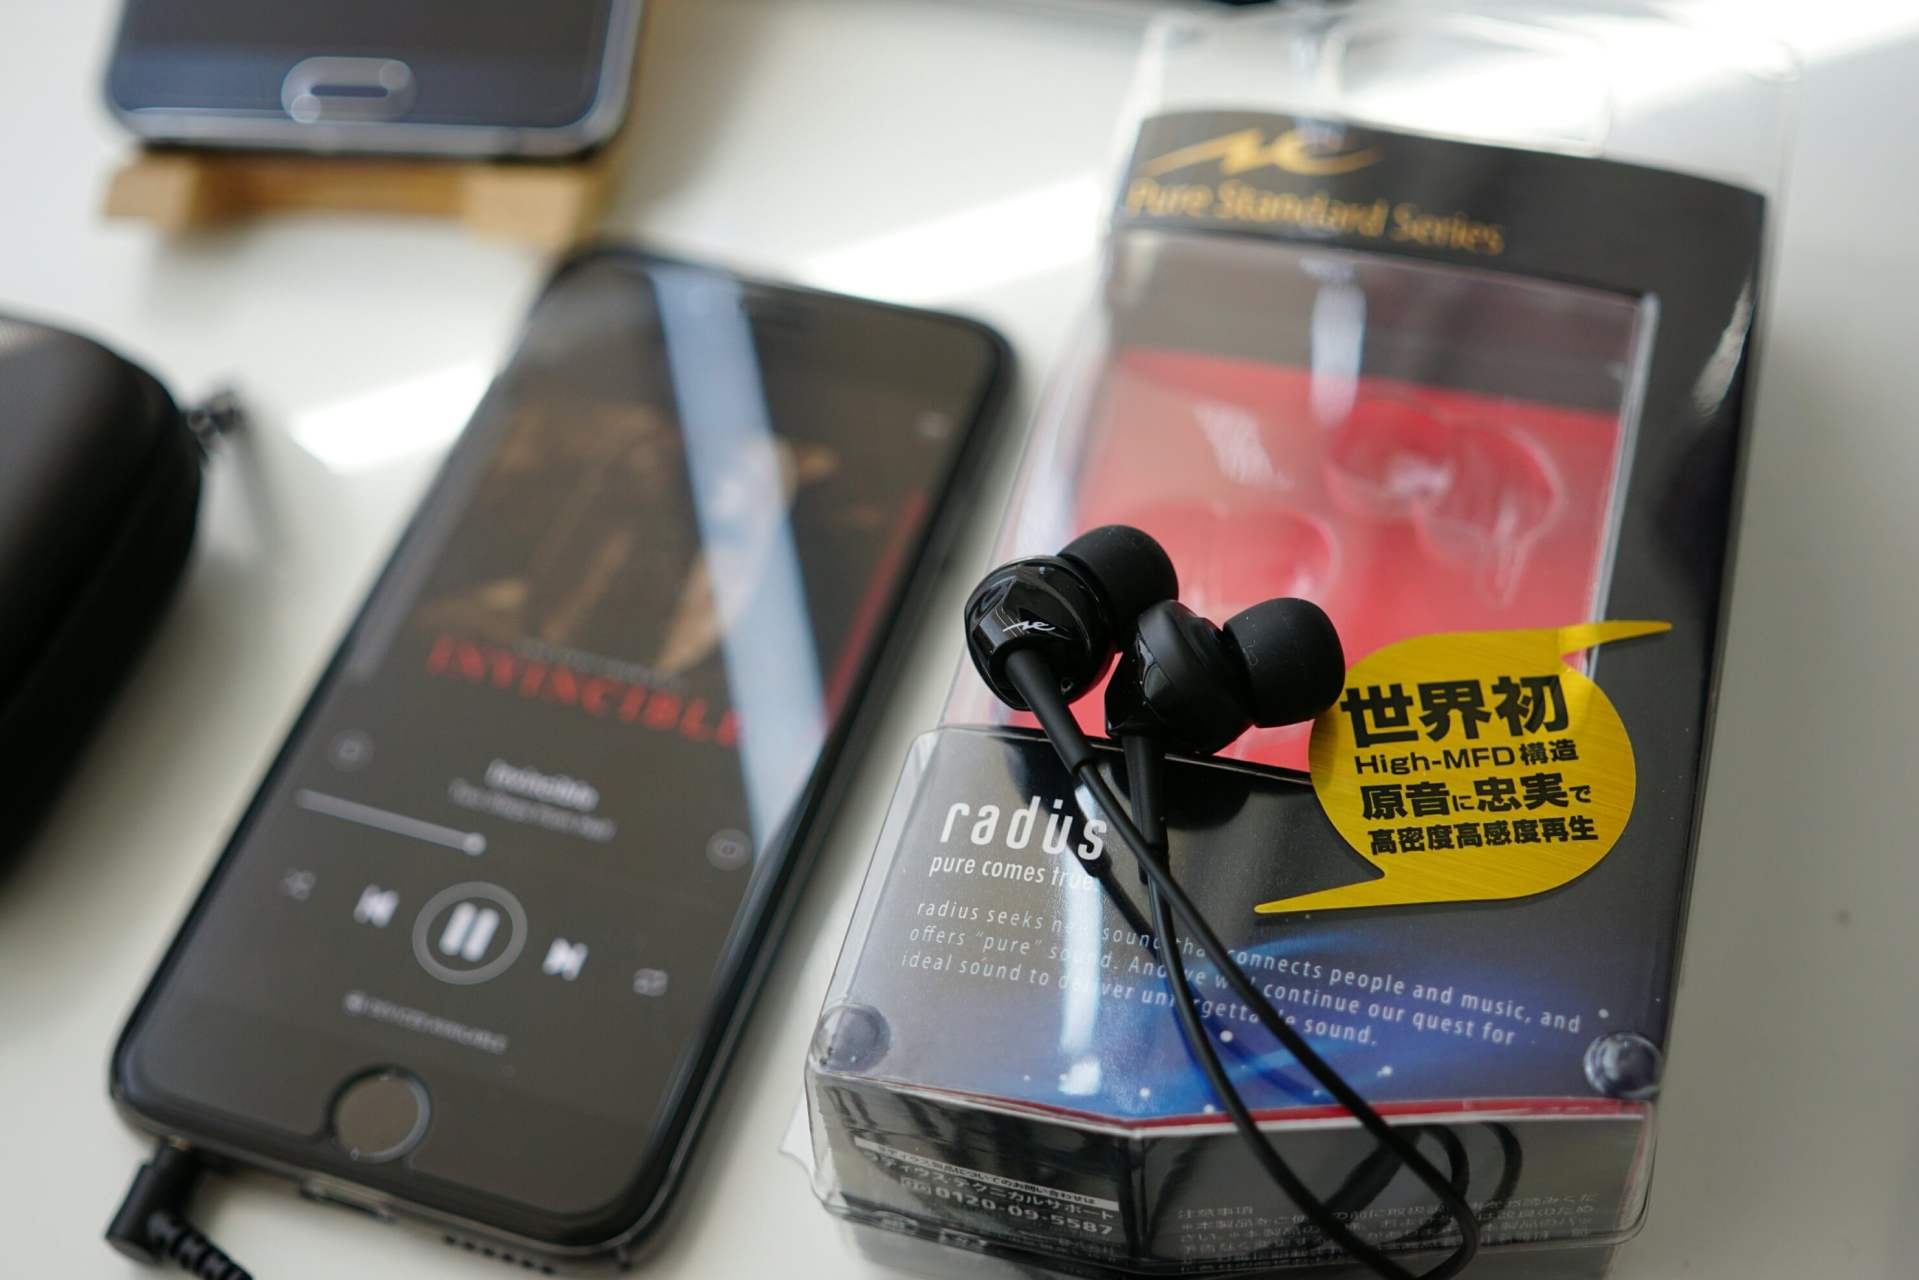 Review Radius HP-NEF31 High-MFD Earphones